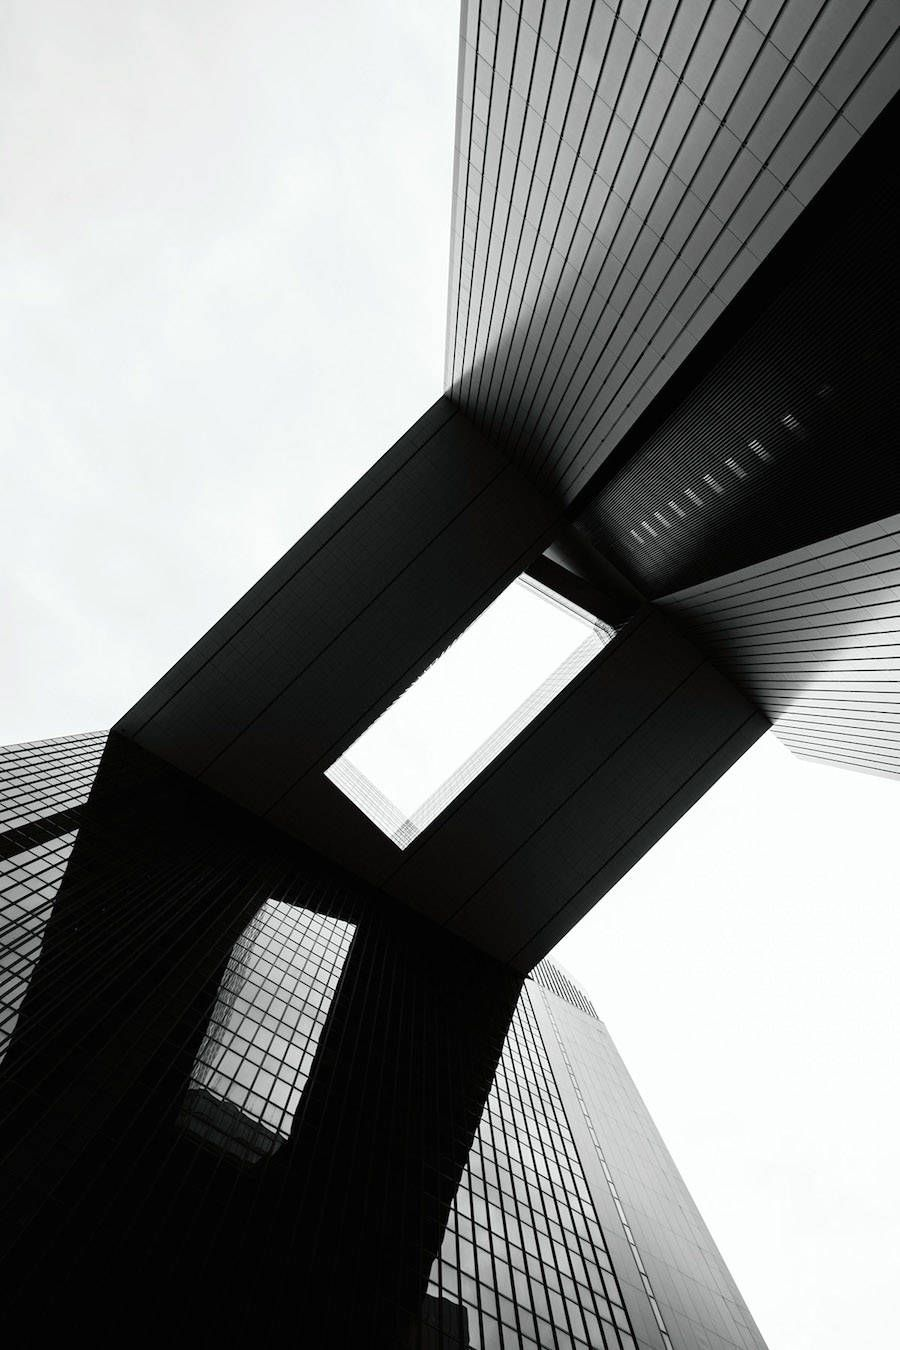 Visions Of The Future Uncluttered Black And White Architecture Photography Fubiz Media